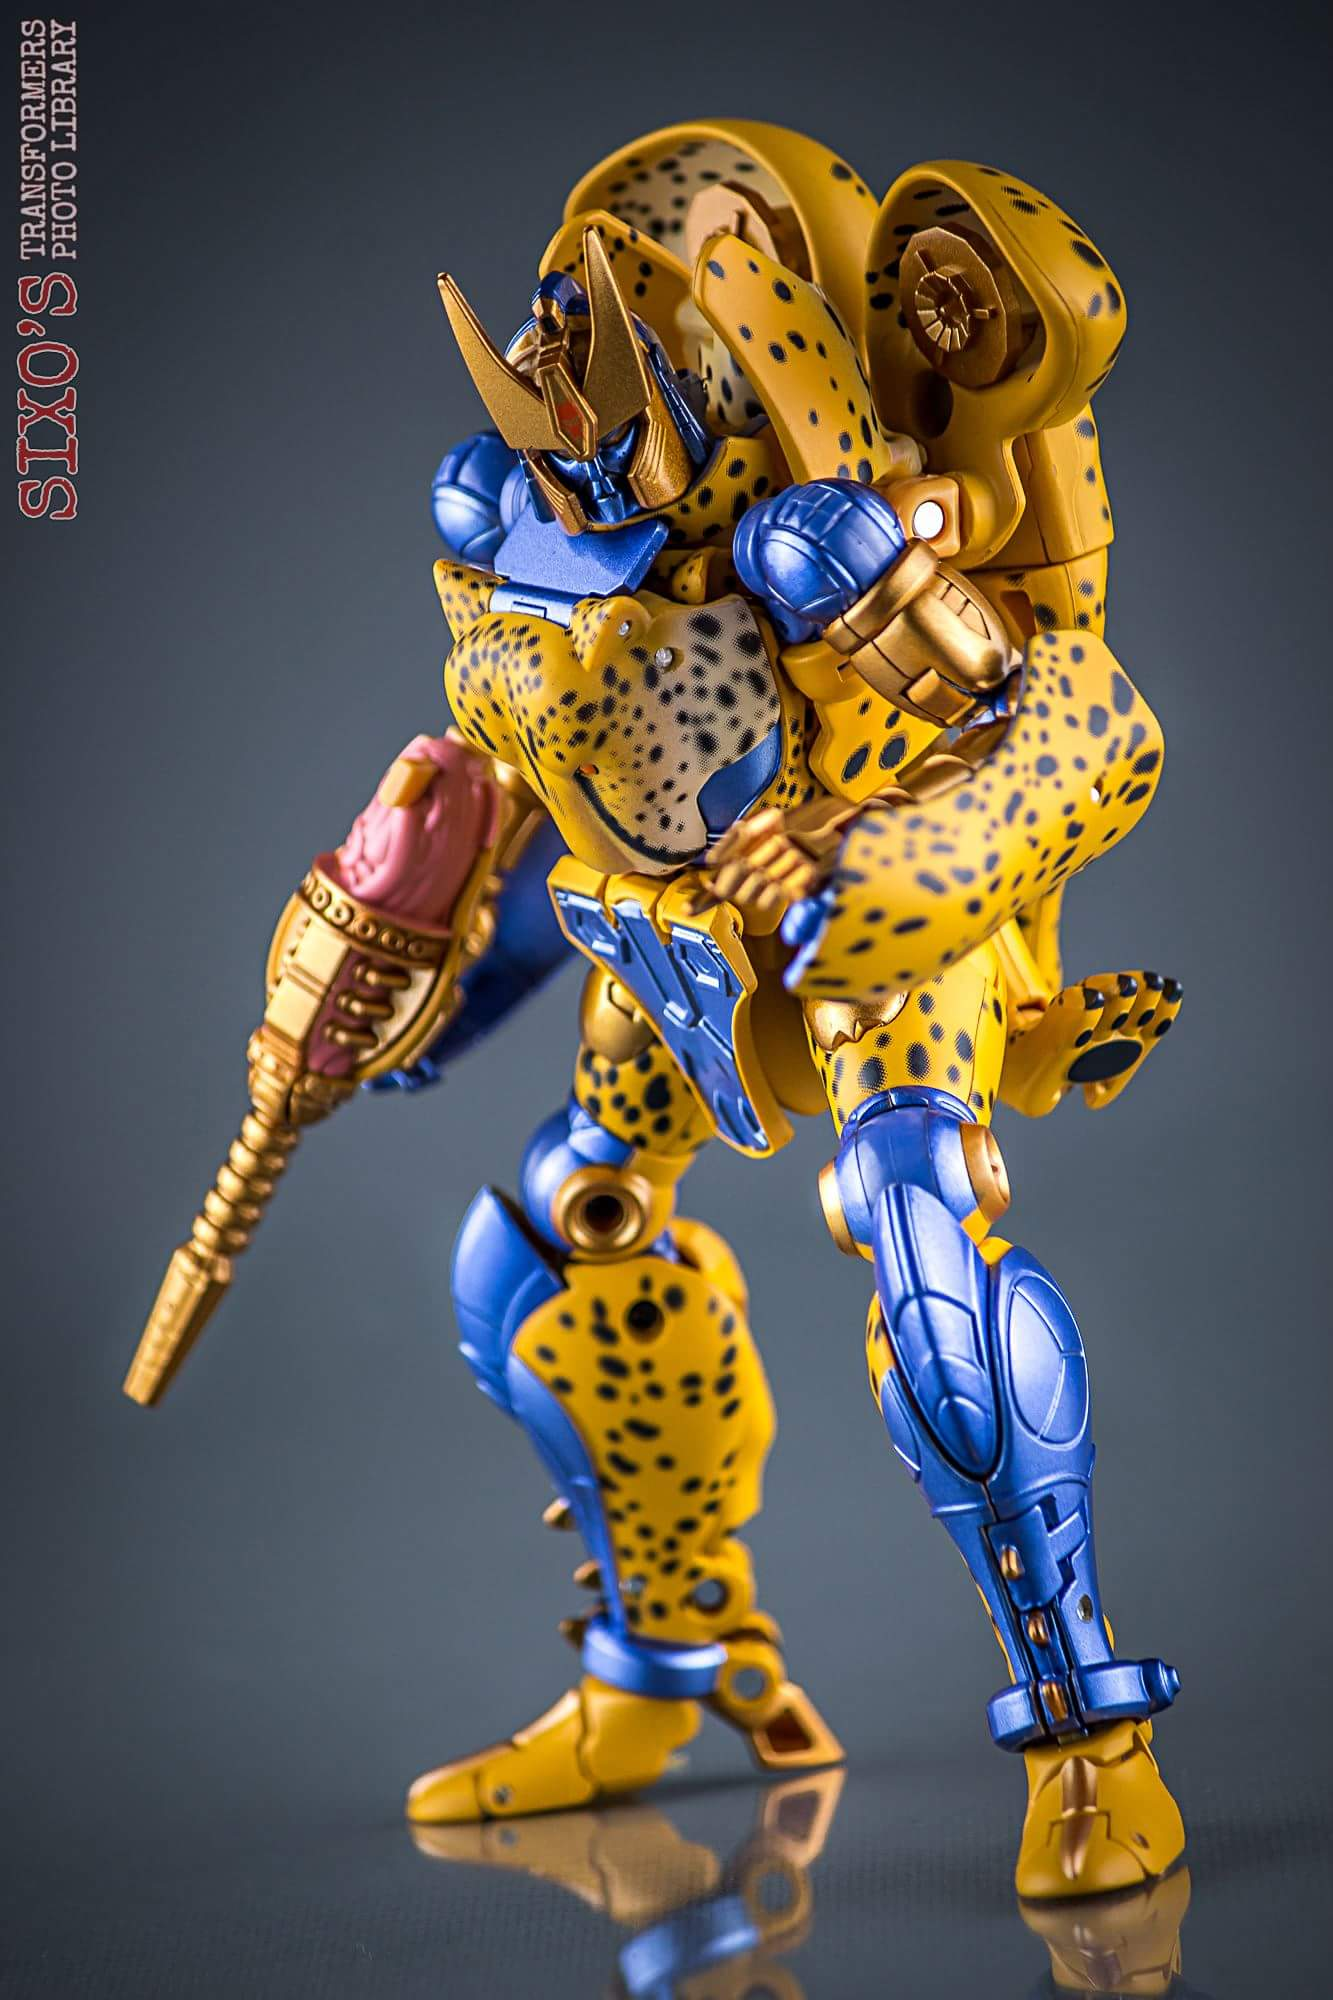 [Masterpiece] MP-34 Cheetor et MP-34S Shadow Panther (Beast Wars) - Page 2 IbVlOU2U